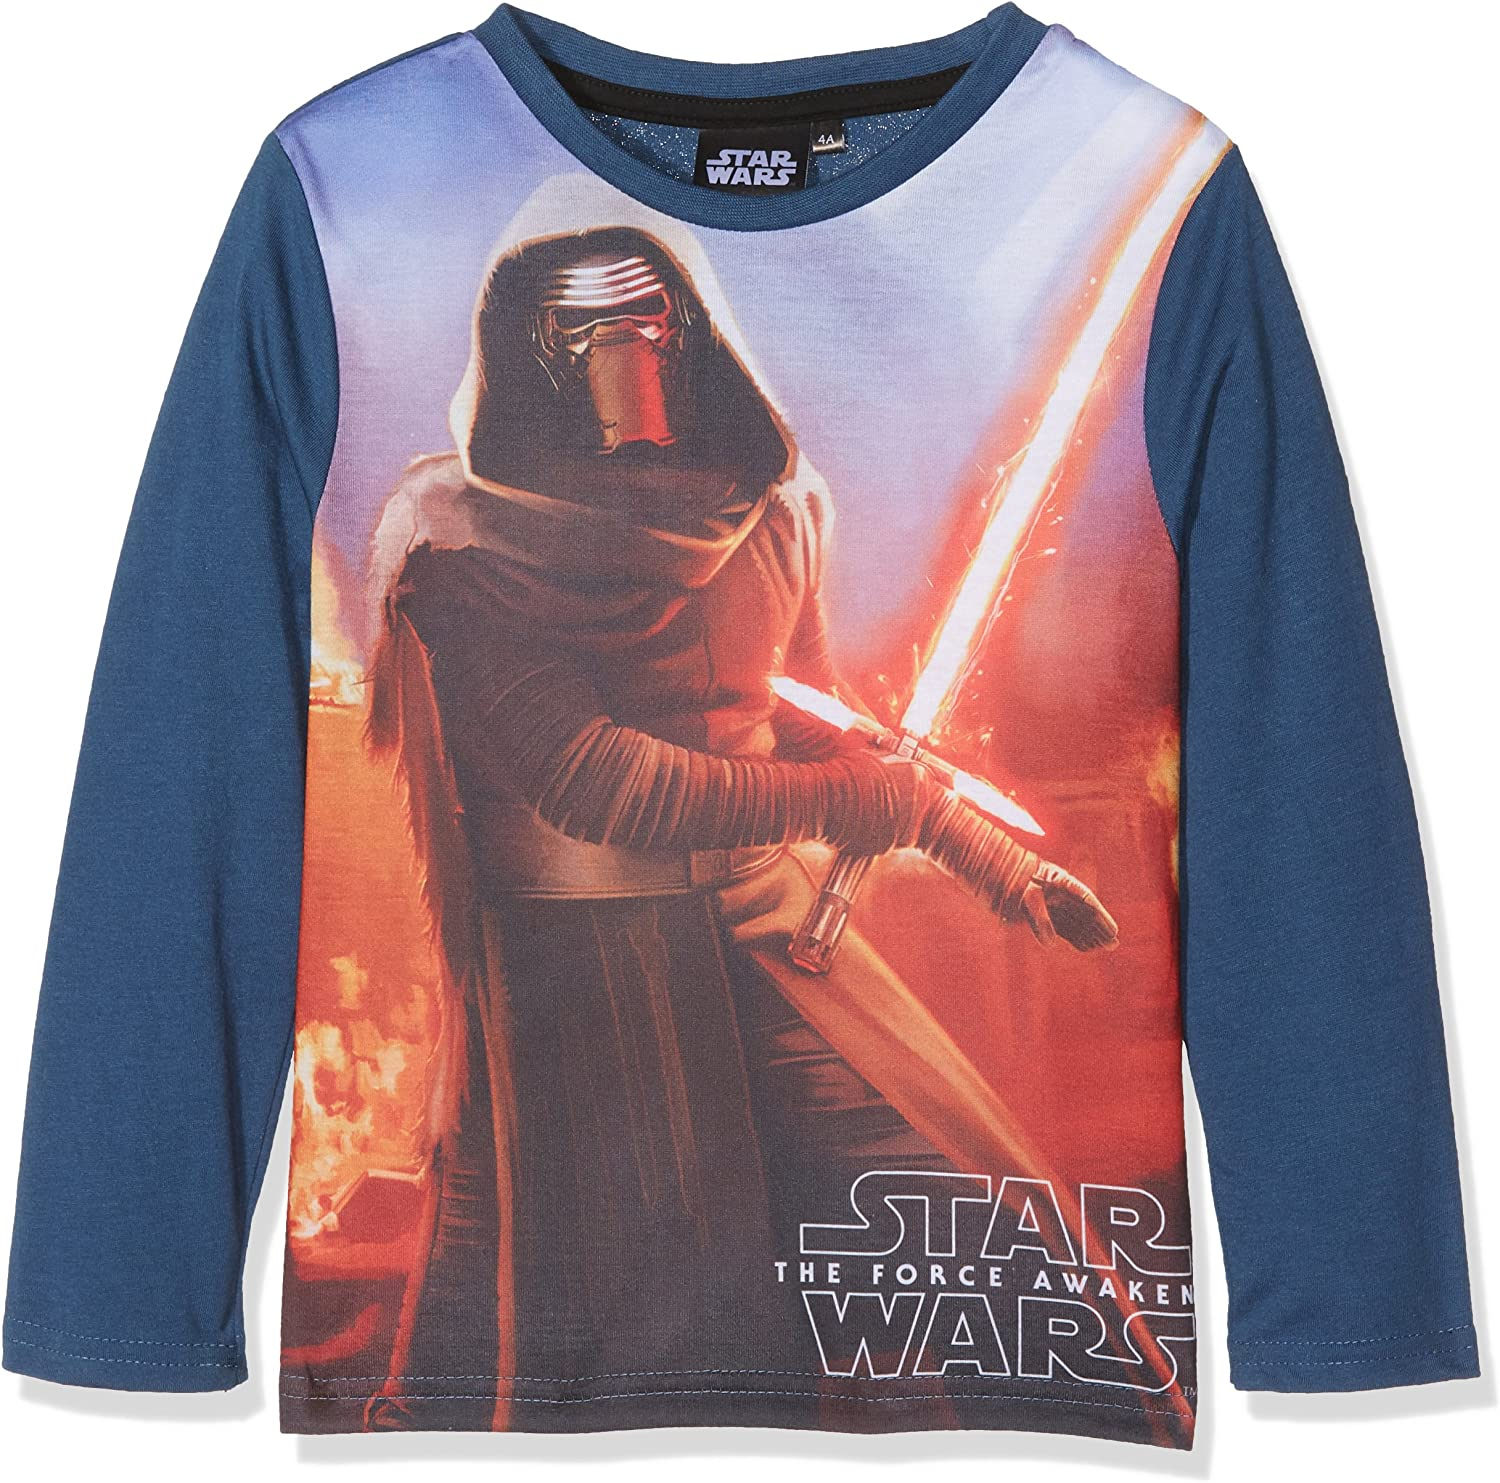 Official Starwars Boys Black Kylo Ren Printed T-Shirt Top Age 3-4 years New